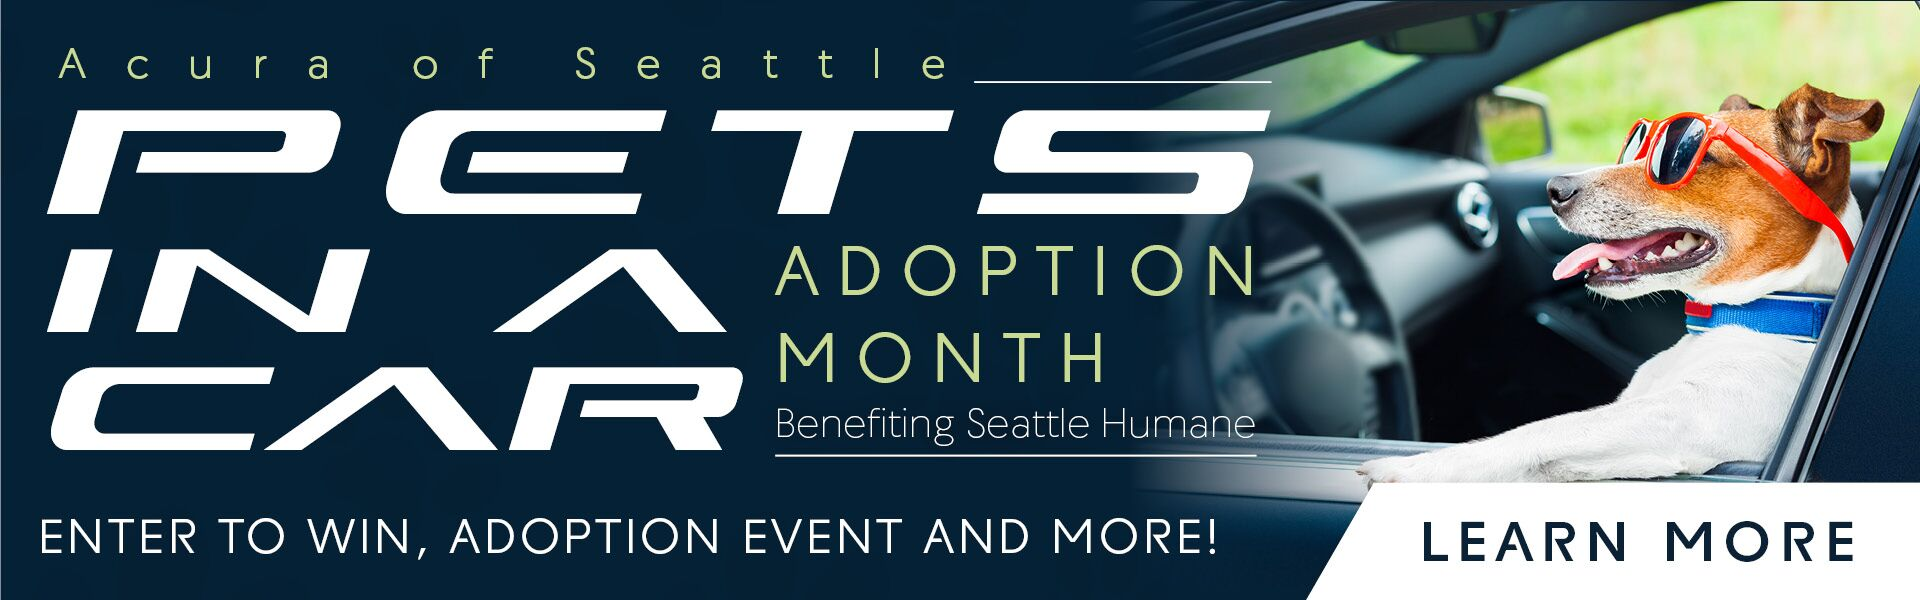 Acura of Seattle Adoption Event